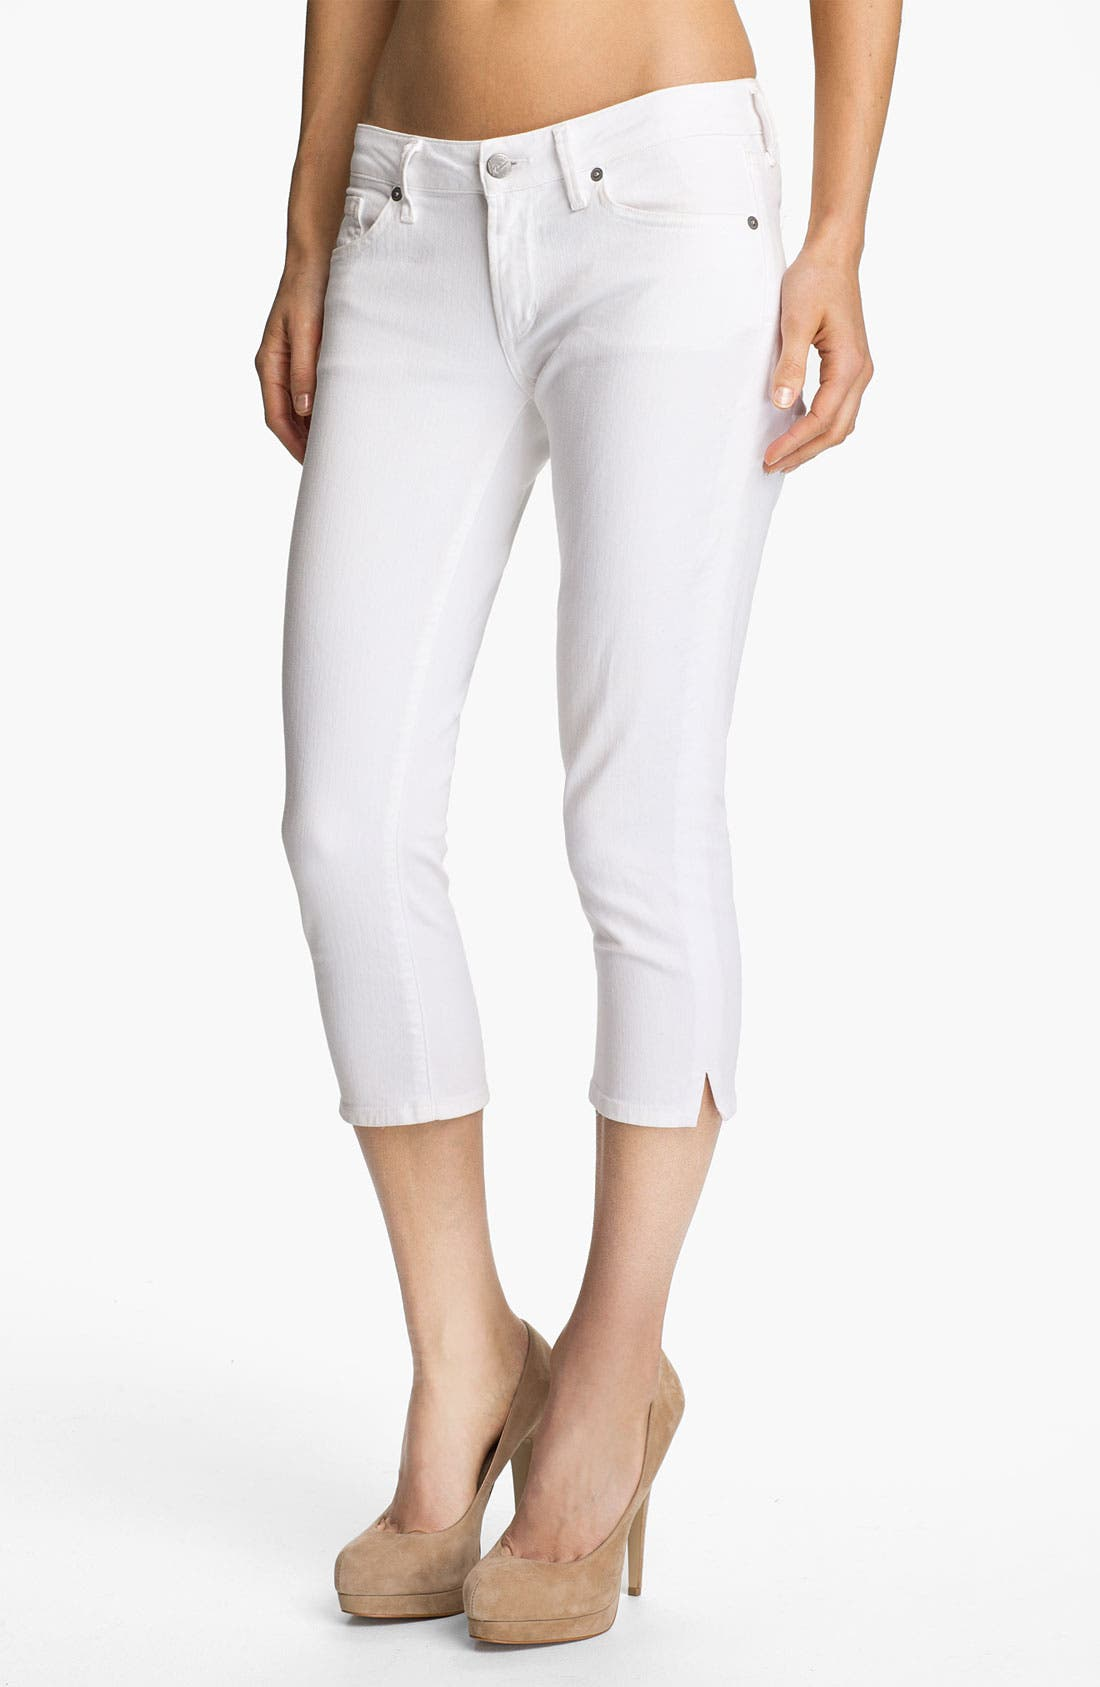 Alternate Image 1 Selected - Citizens of Humanity 'Racer' Crop Skinny Jeans (Santorini)